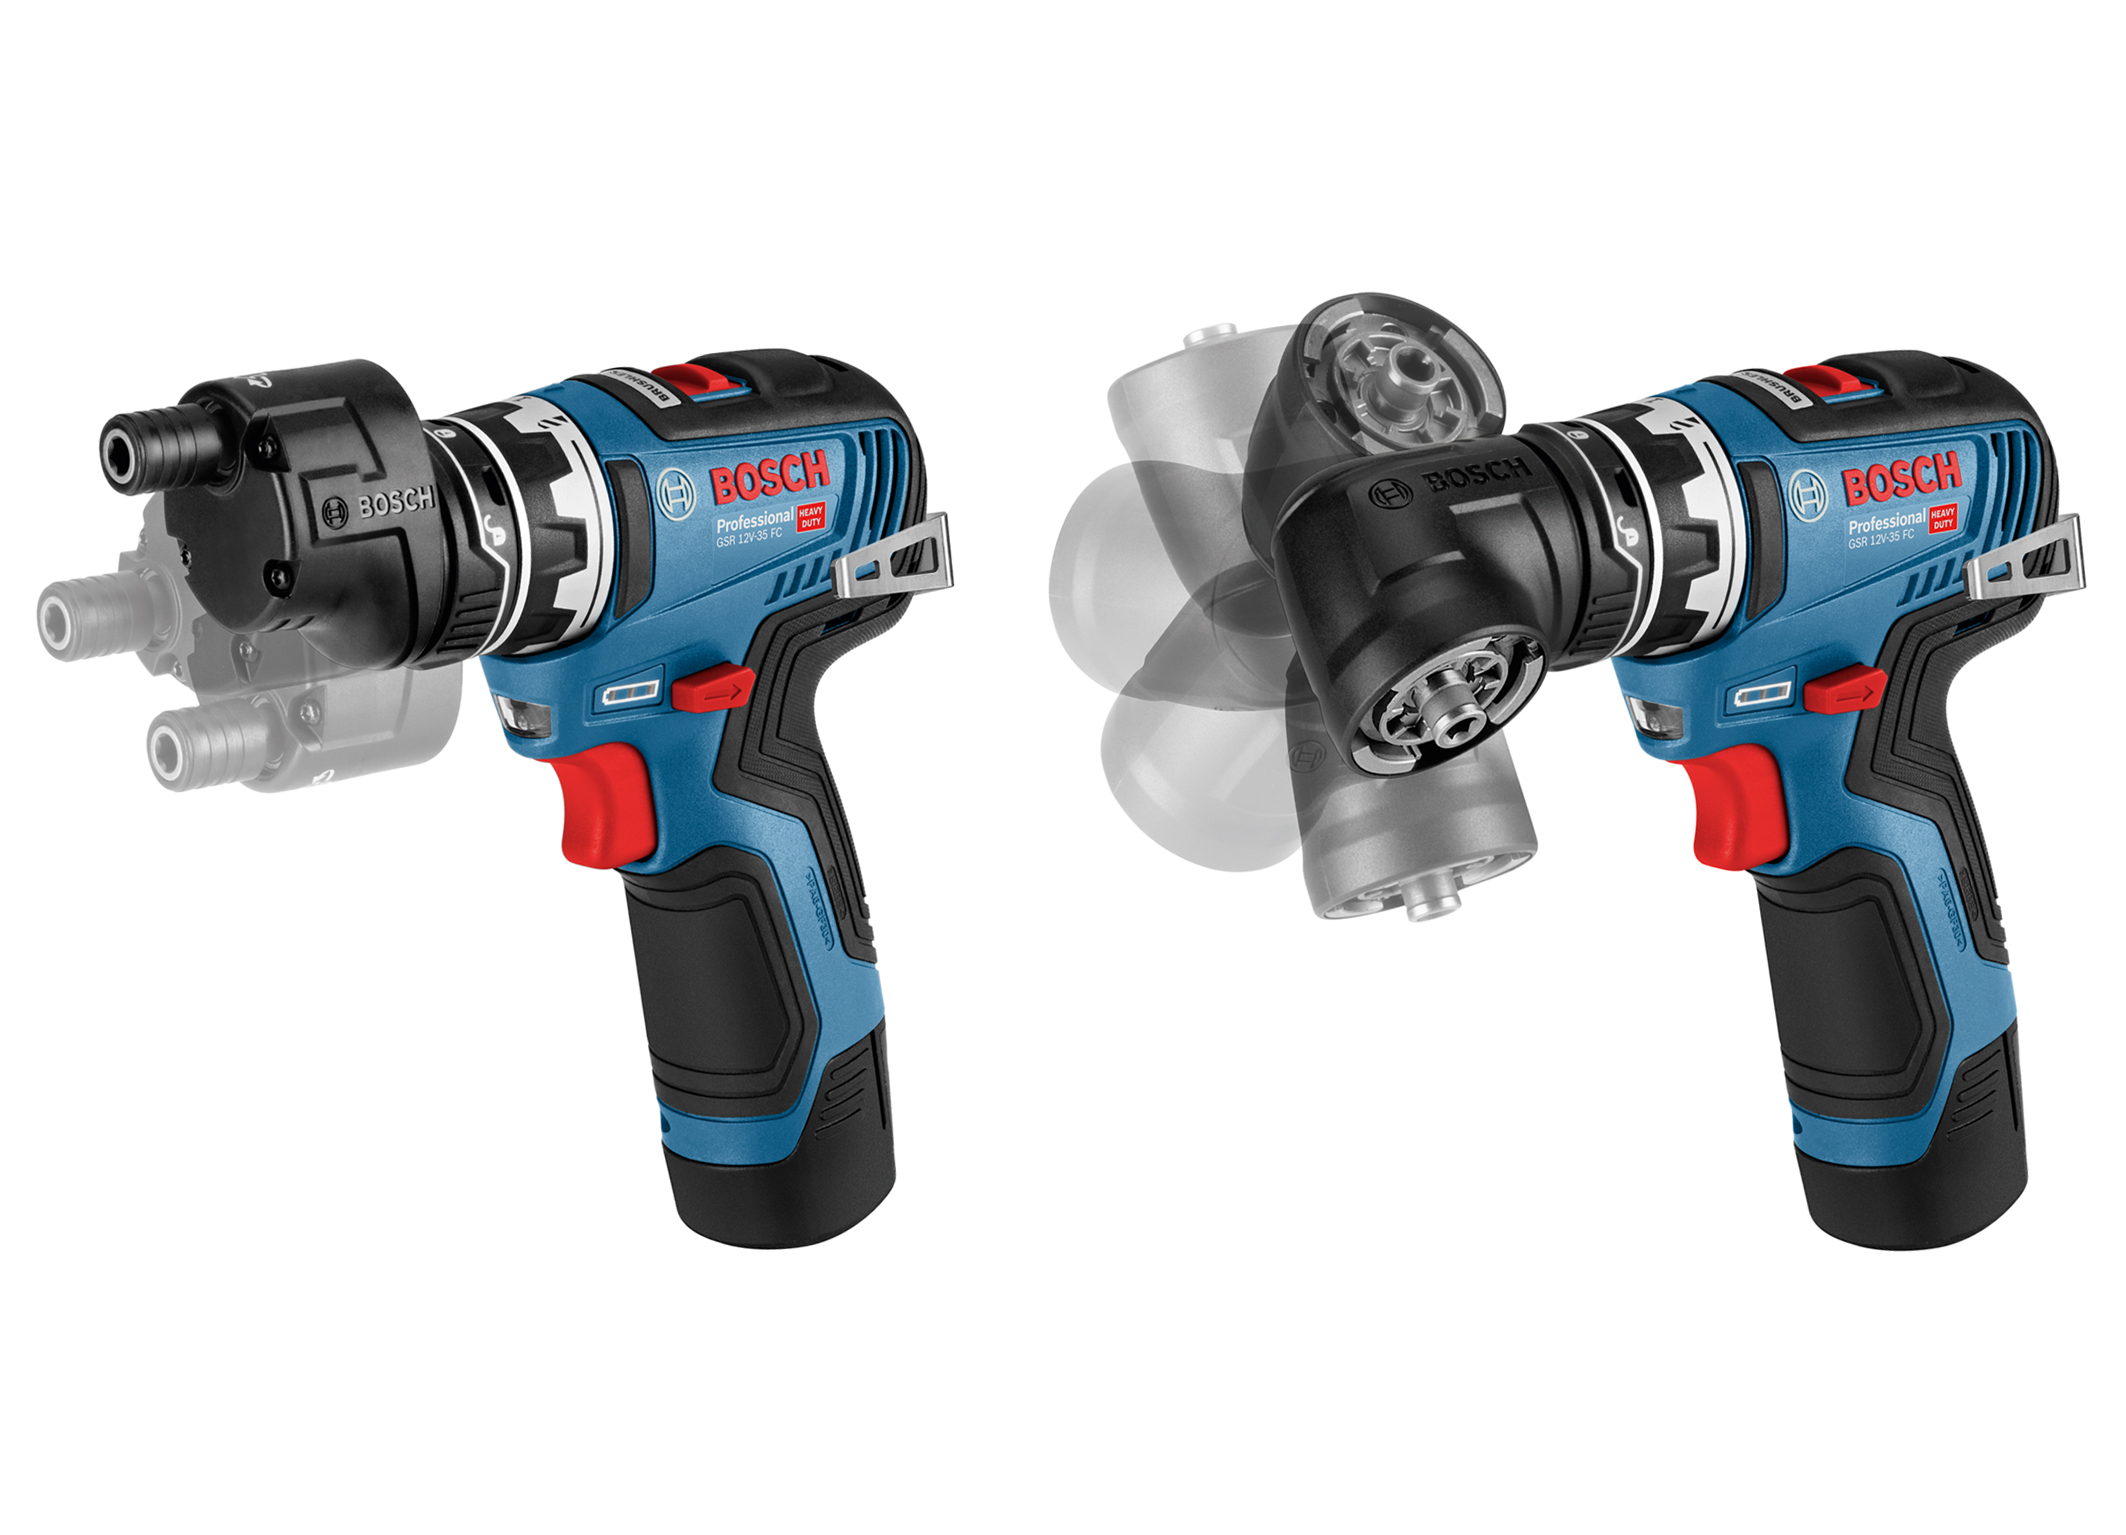 The new GSR 12V-35 FC Professional cordless drill/driver: The most compact and versatile drill/driver system